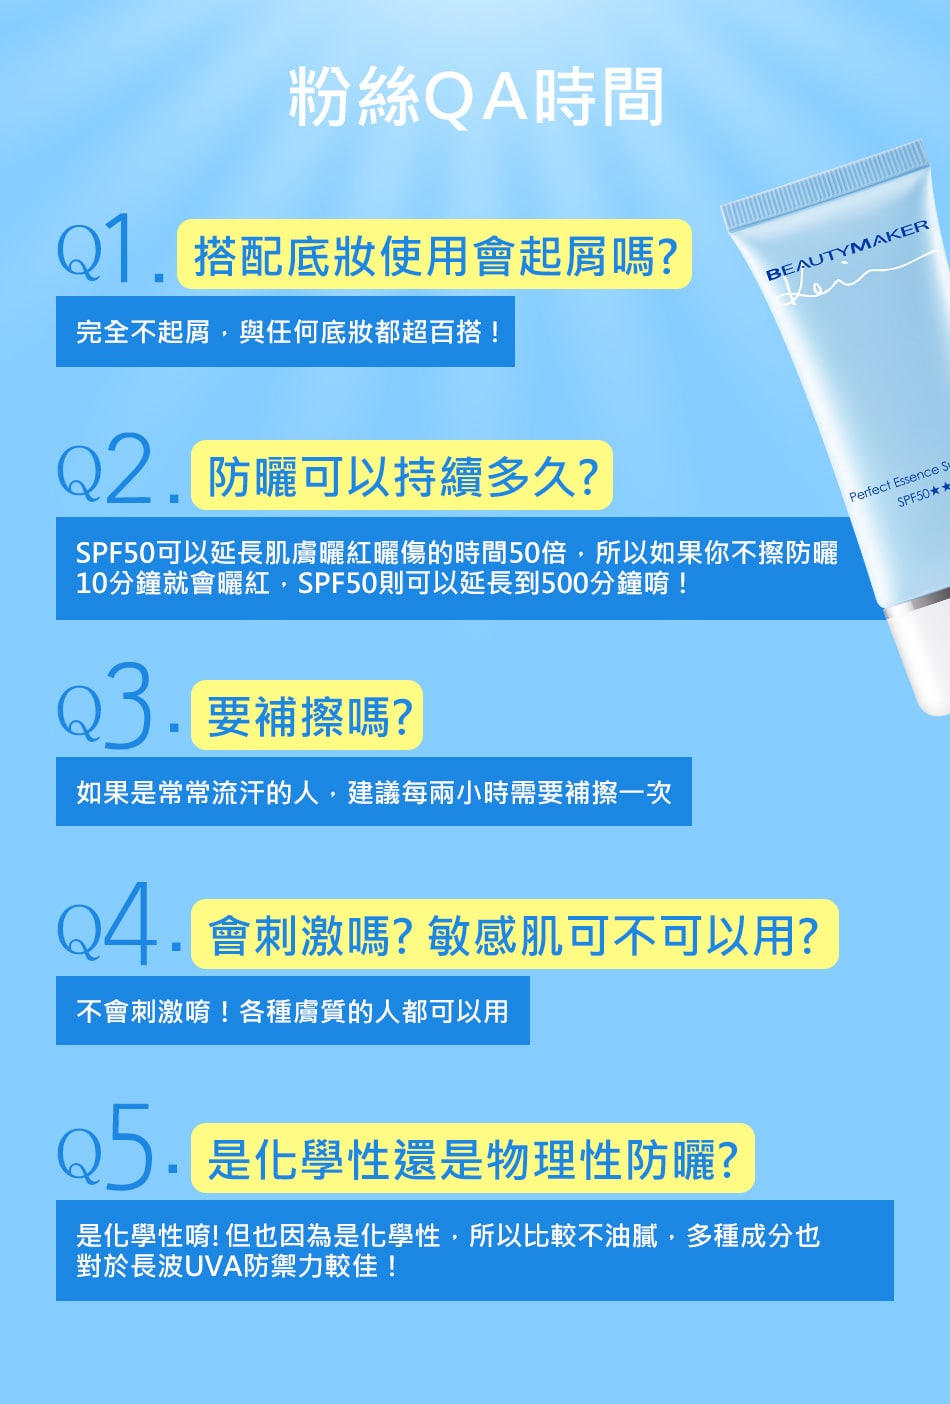 Beautymaker Perfect Essence Sunscreen - Product QnA